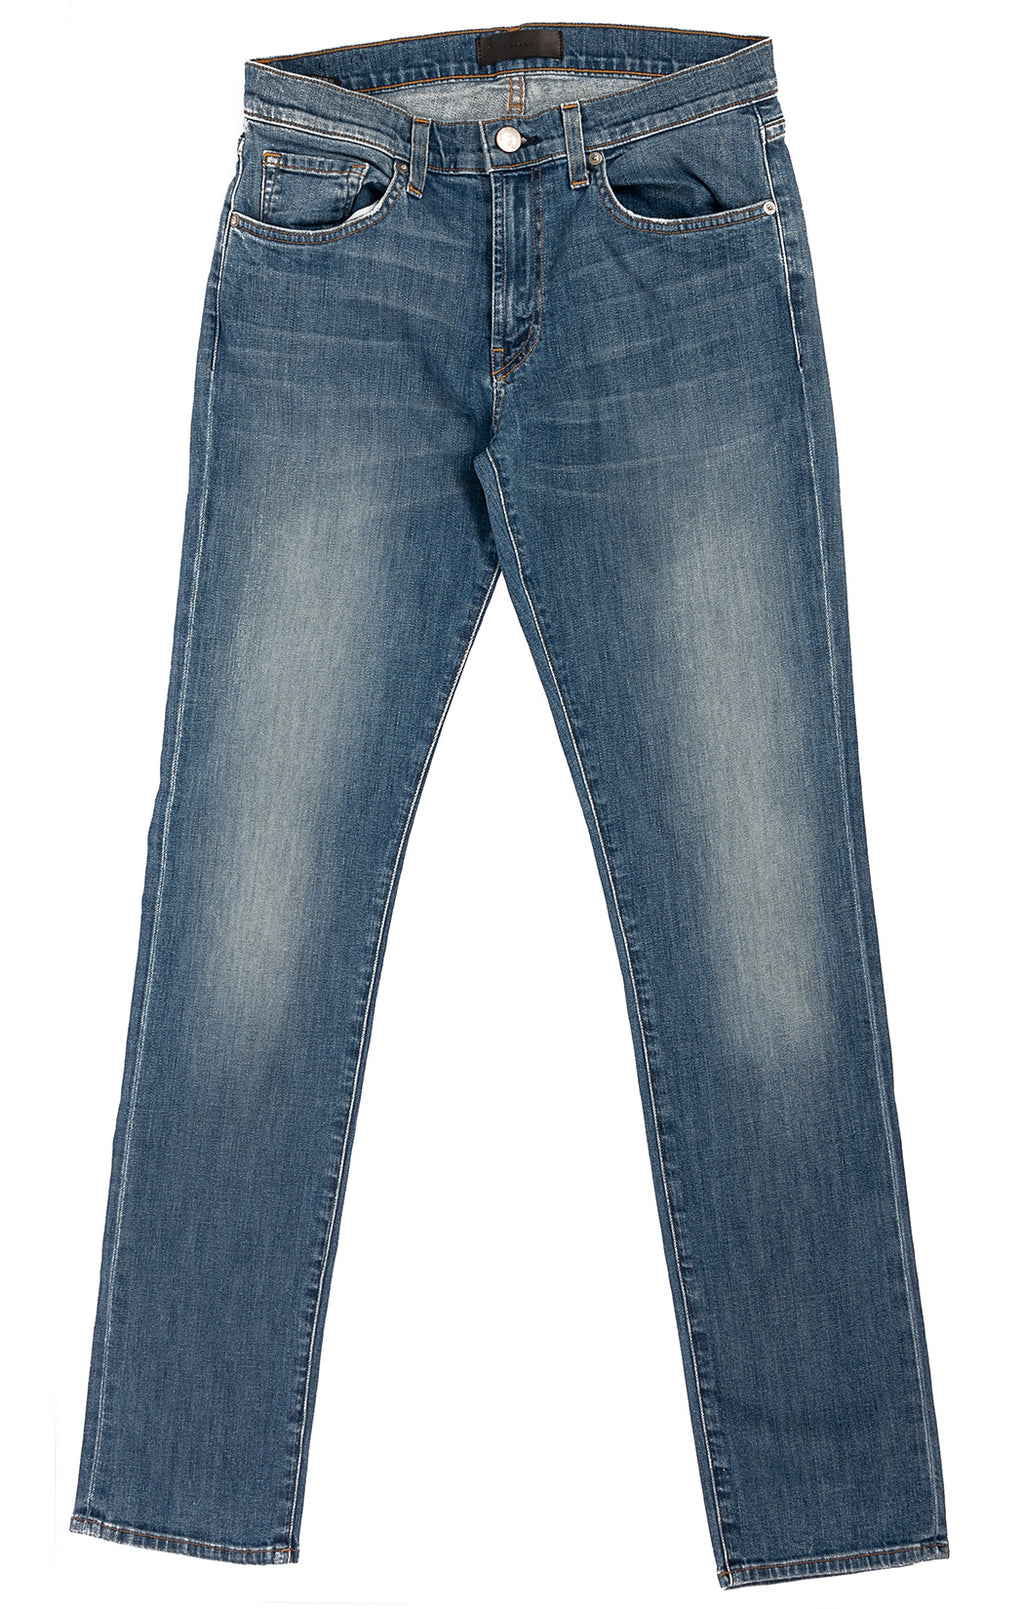 Denim five pocket jeans (somewhat distressed)